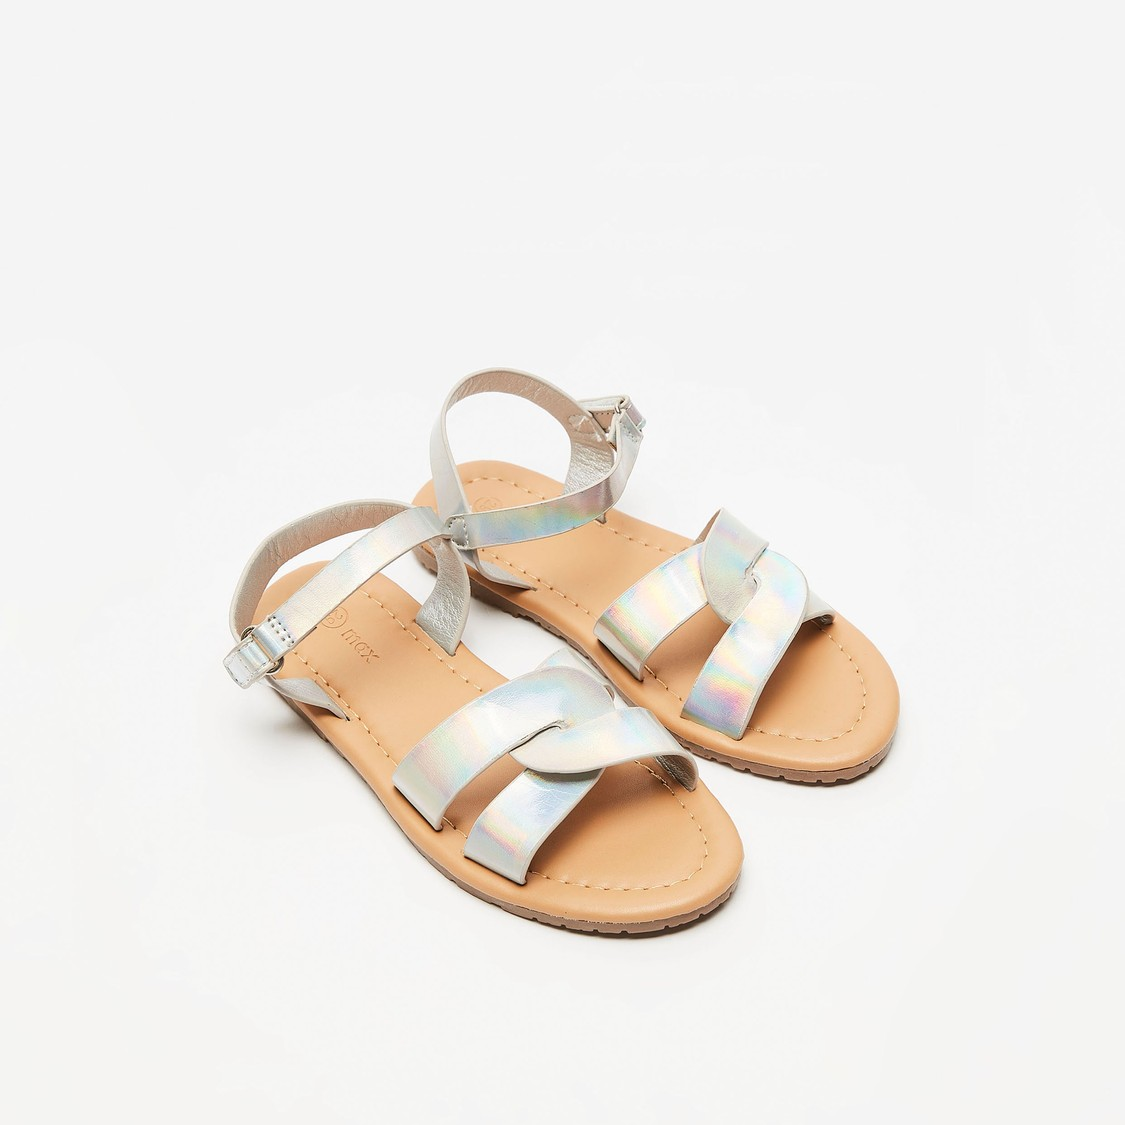 Glossy Flat Sandals with Hook and Loop Closure